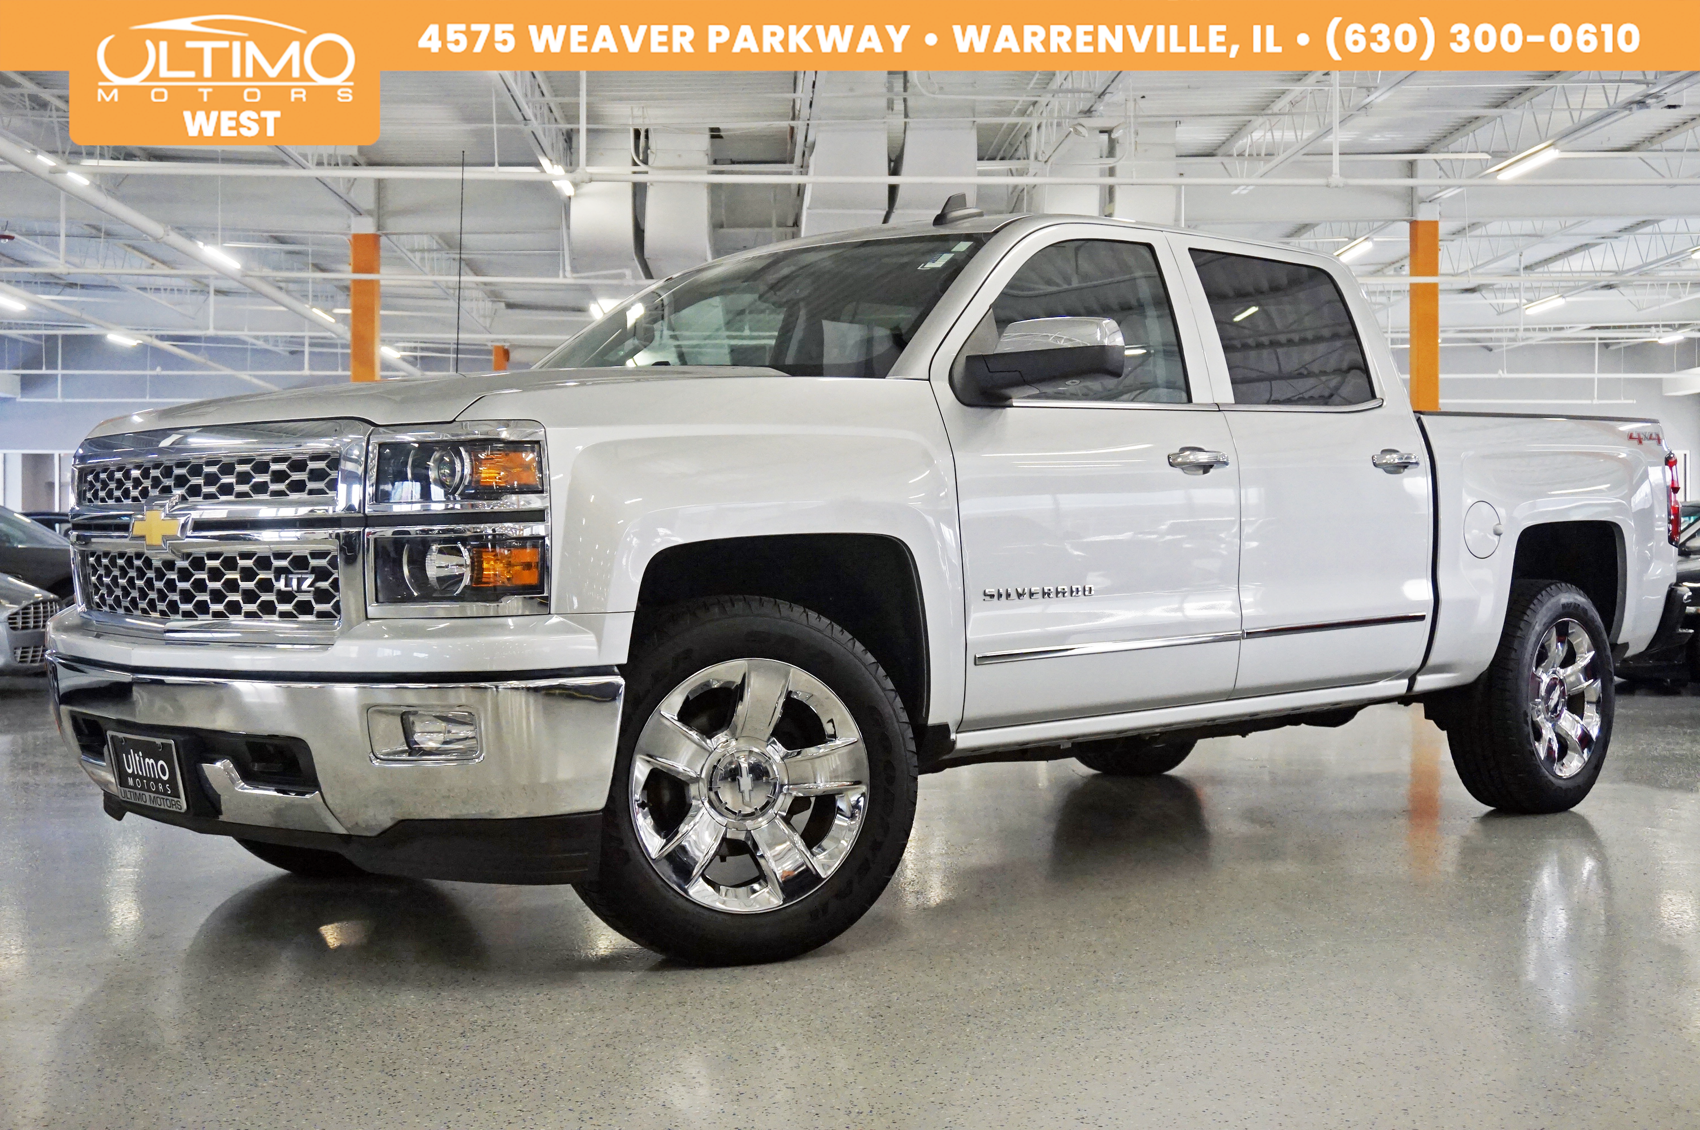 Pre-Owned 2015 Chevrolet Silverado 1500 LTZ 20-Chrome-Wheels, Bose, Rear Camera, 1-Owner